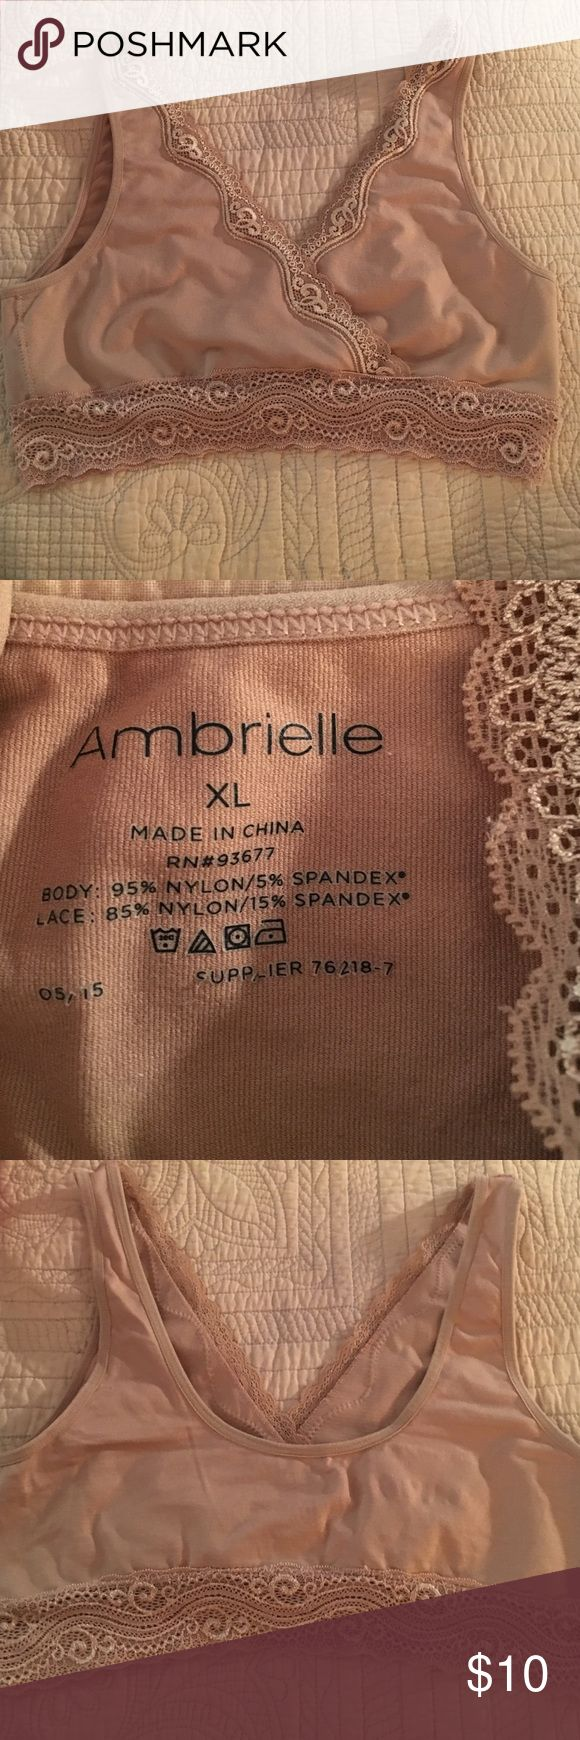 Ambrielle nude sports bra / fashion bra xl like n Ambrielle nude beige bra size xl like new very pretty . Ambrielle Intimates & Sleepwear Bras